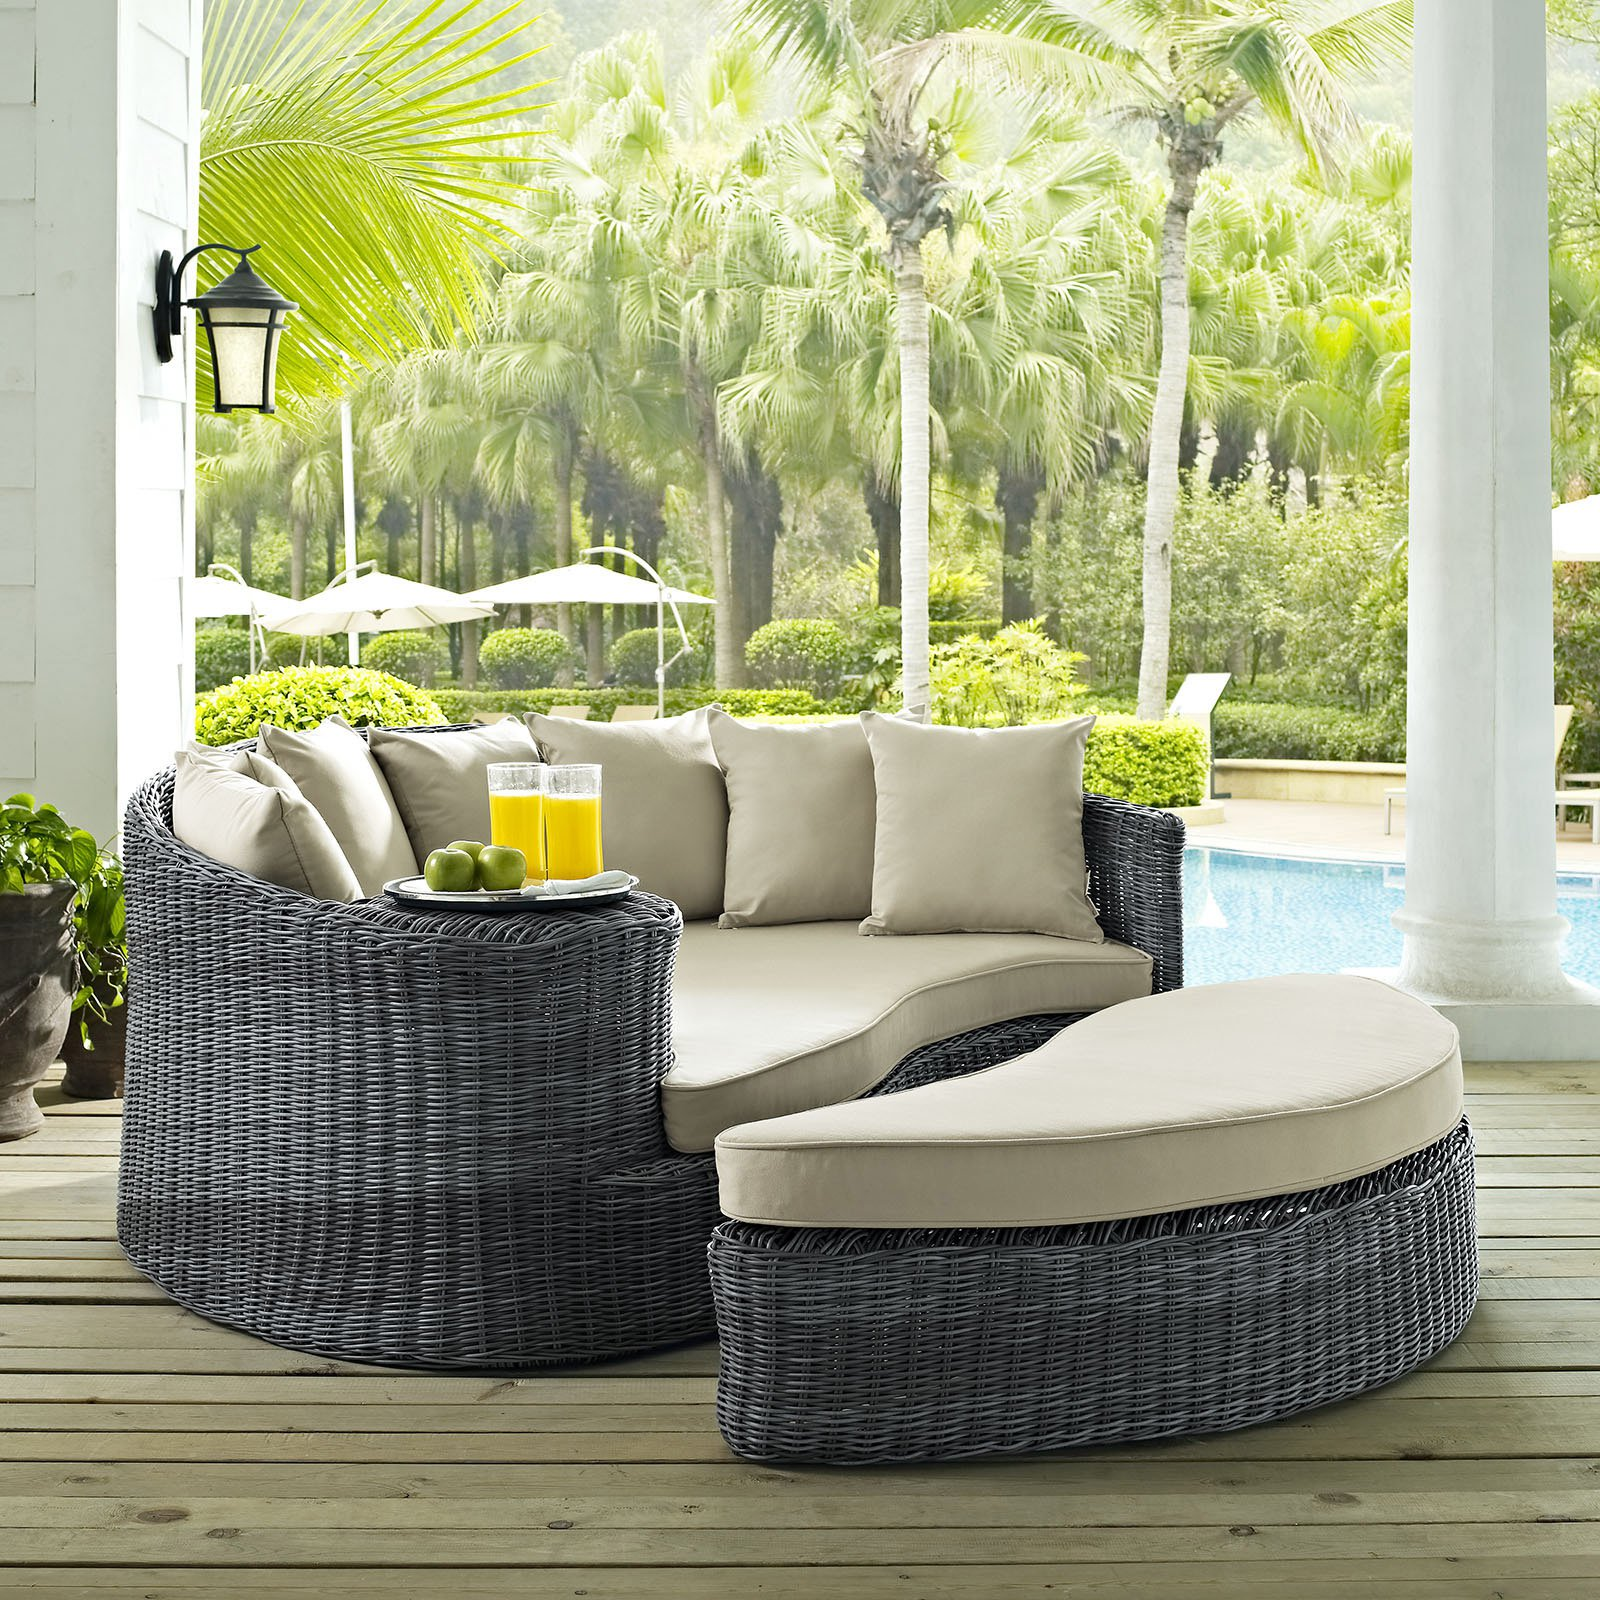 Modway Summon Outdoor Patio Sunbrella Daybed, Multiple Colors